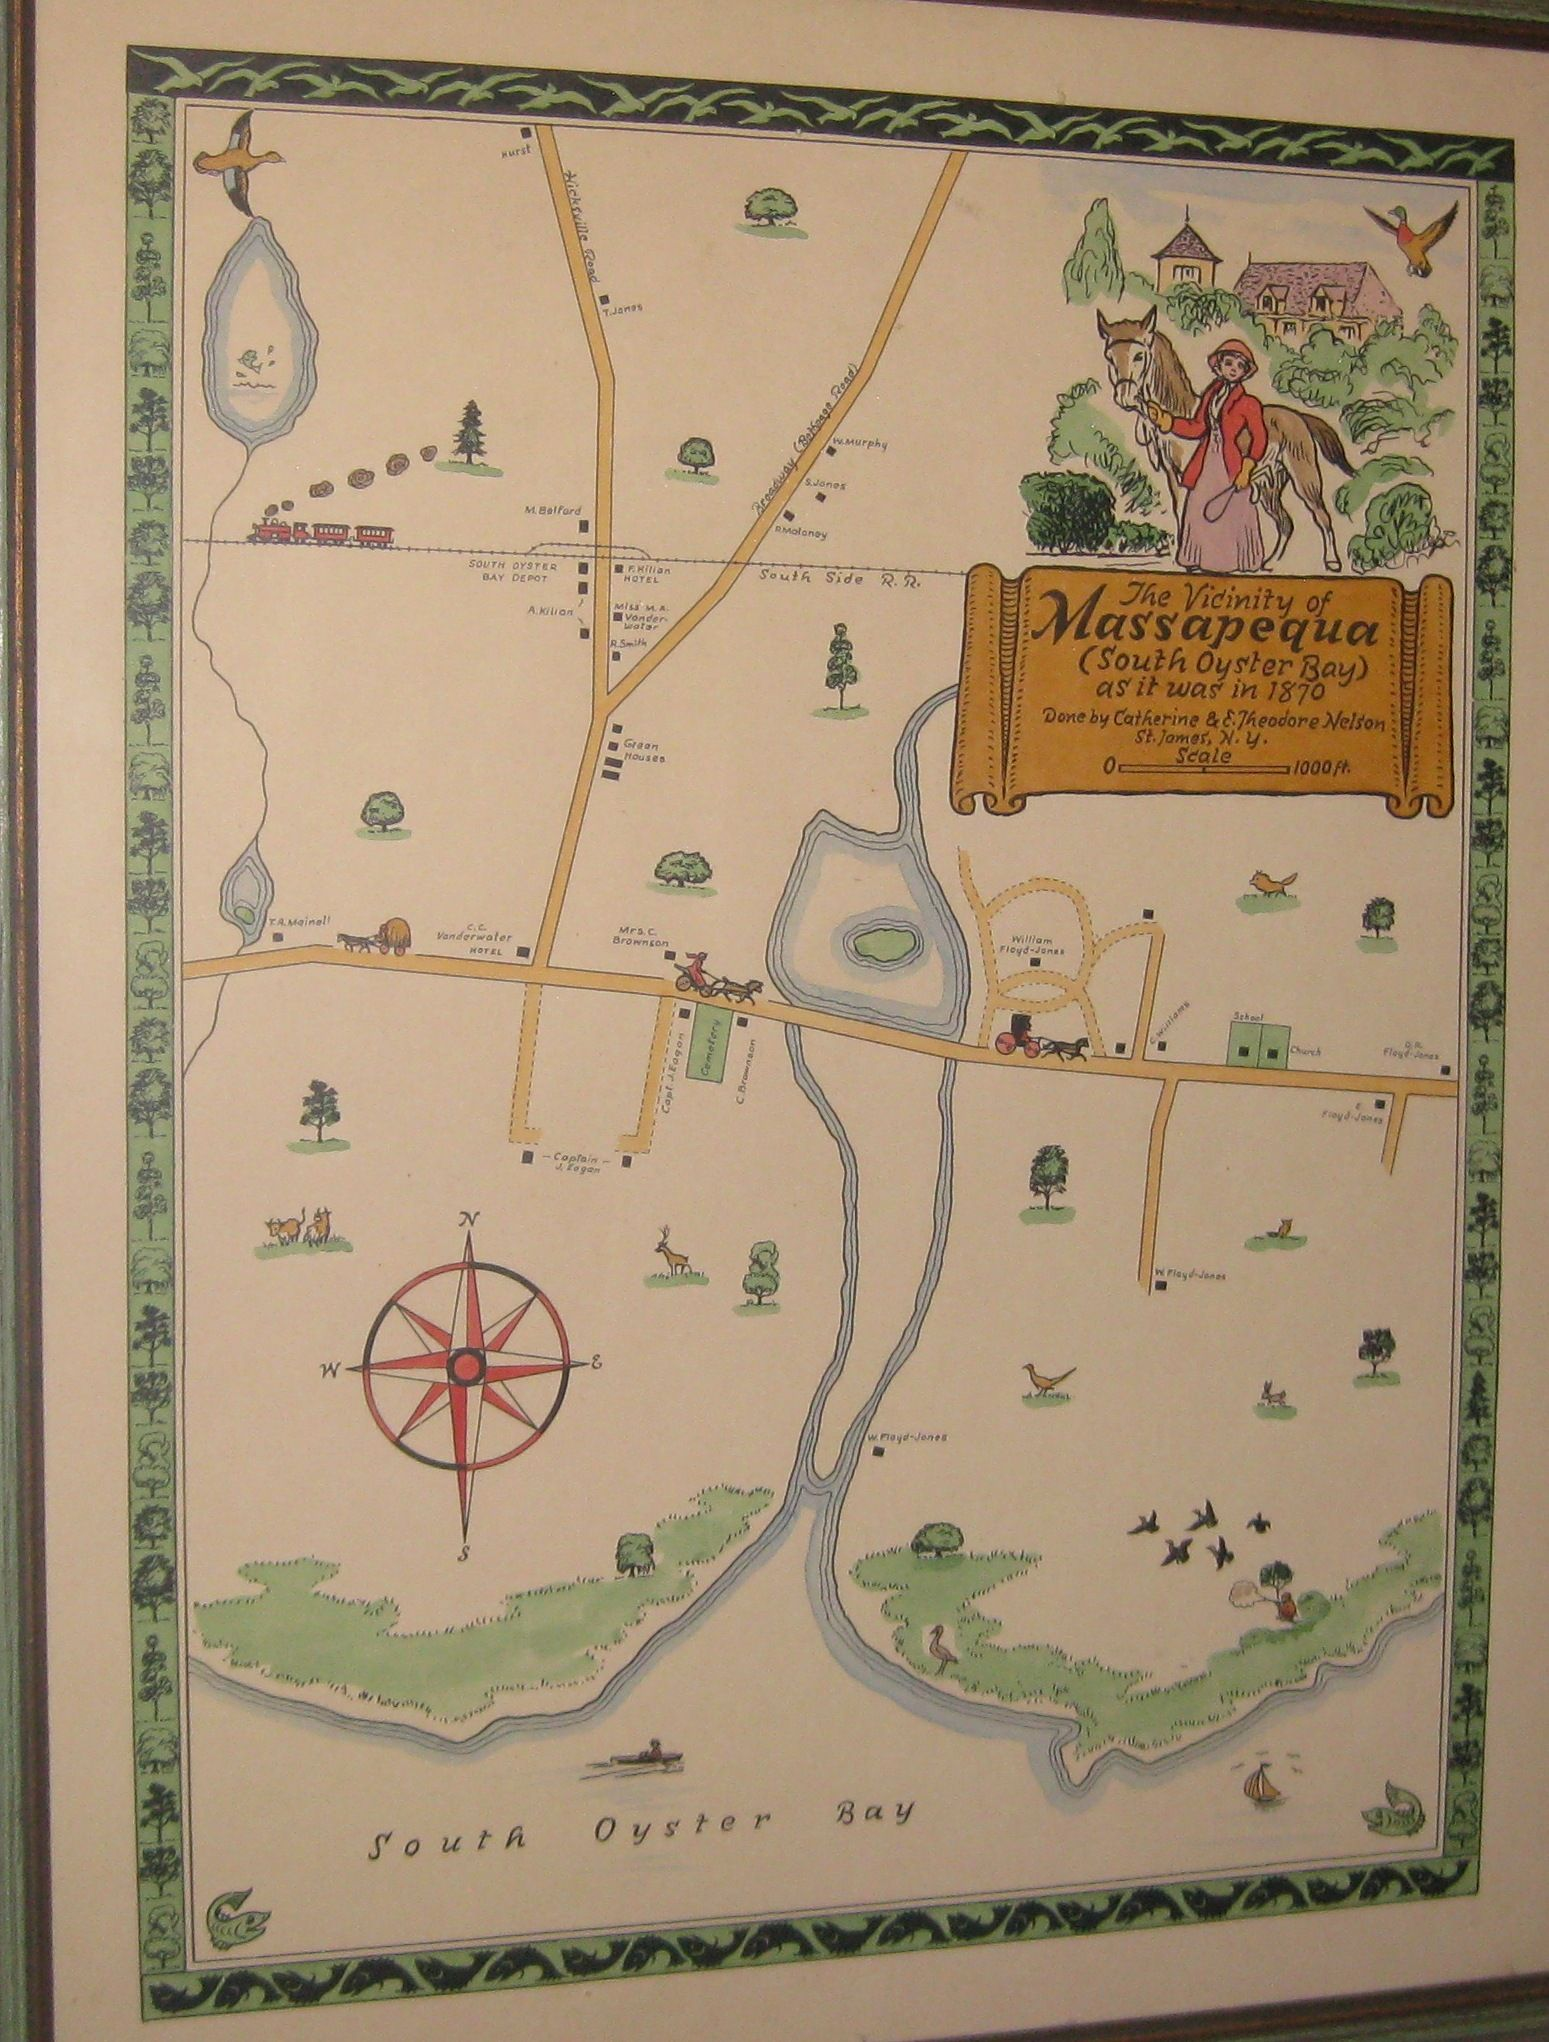 parkside junior high school massapequa and the map of massapequa in the 1870 s the central lake is caroon s lake which in the